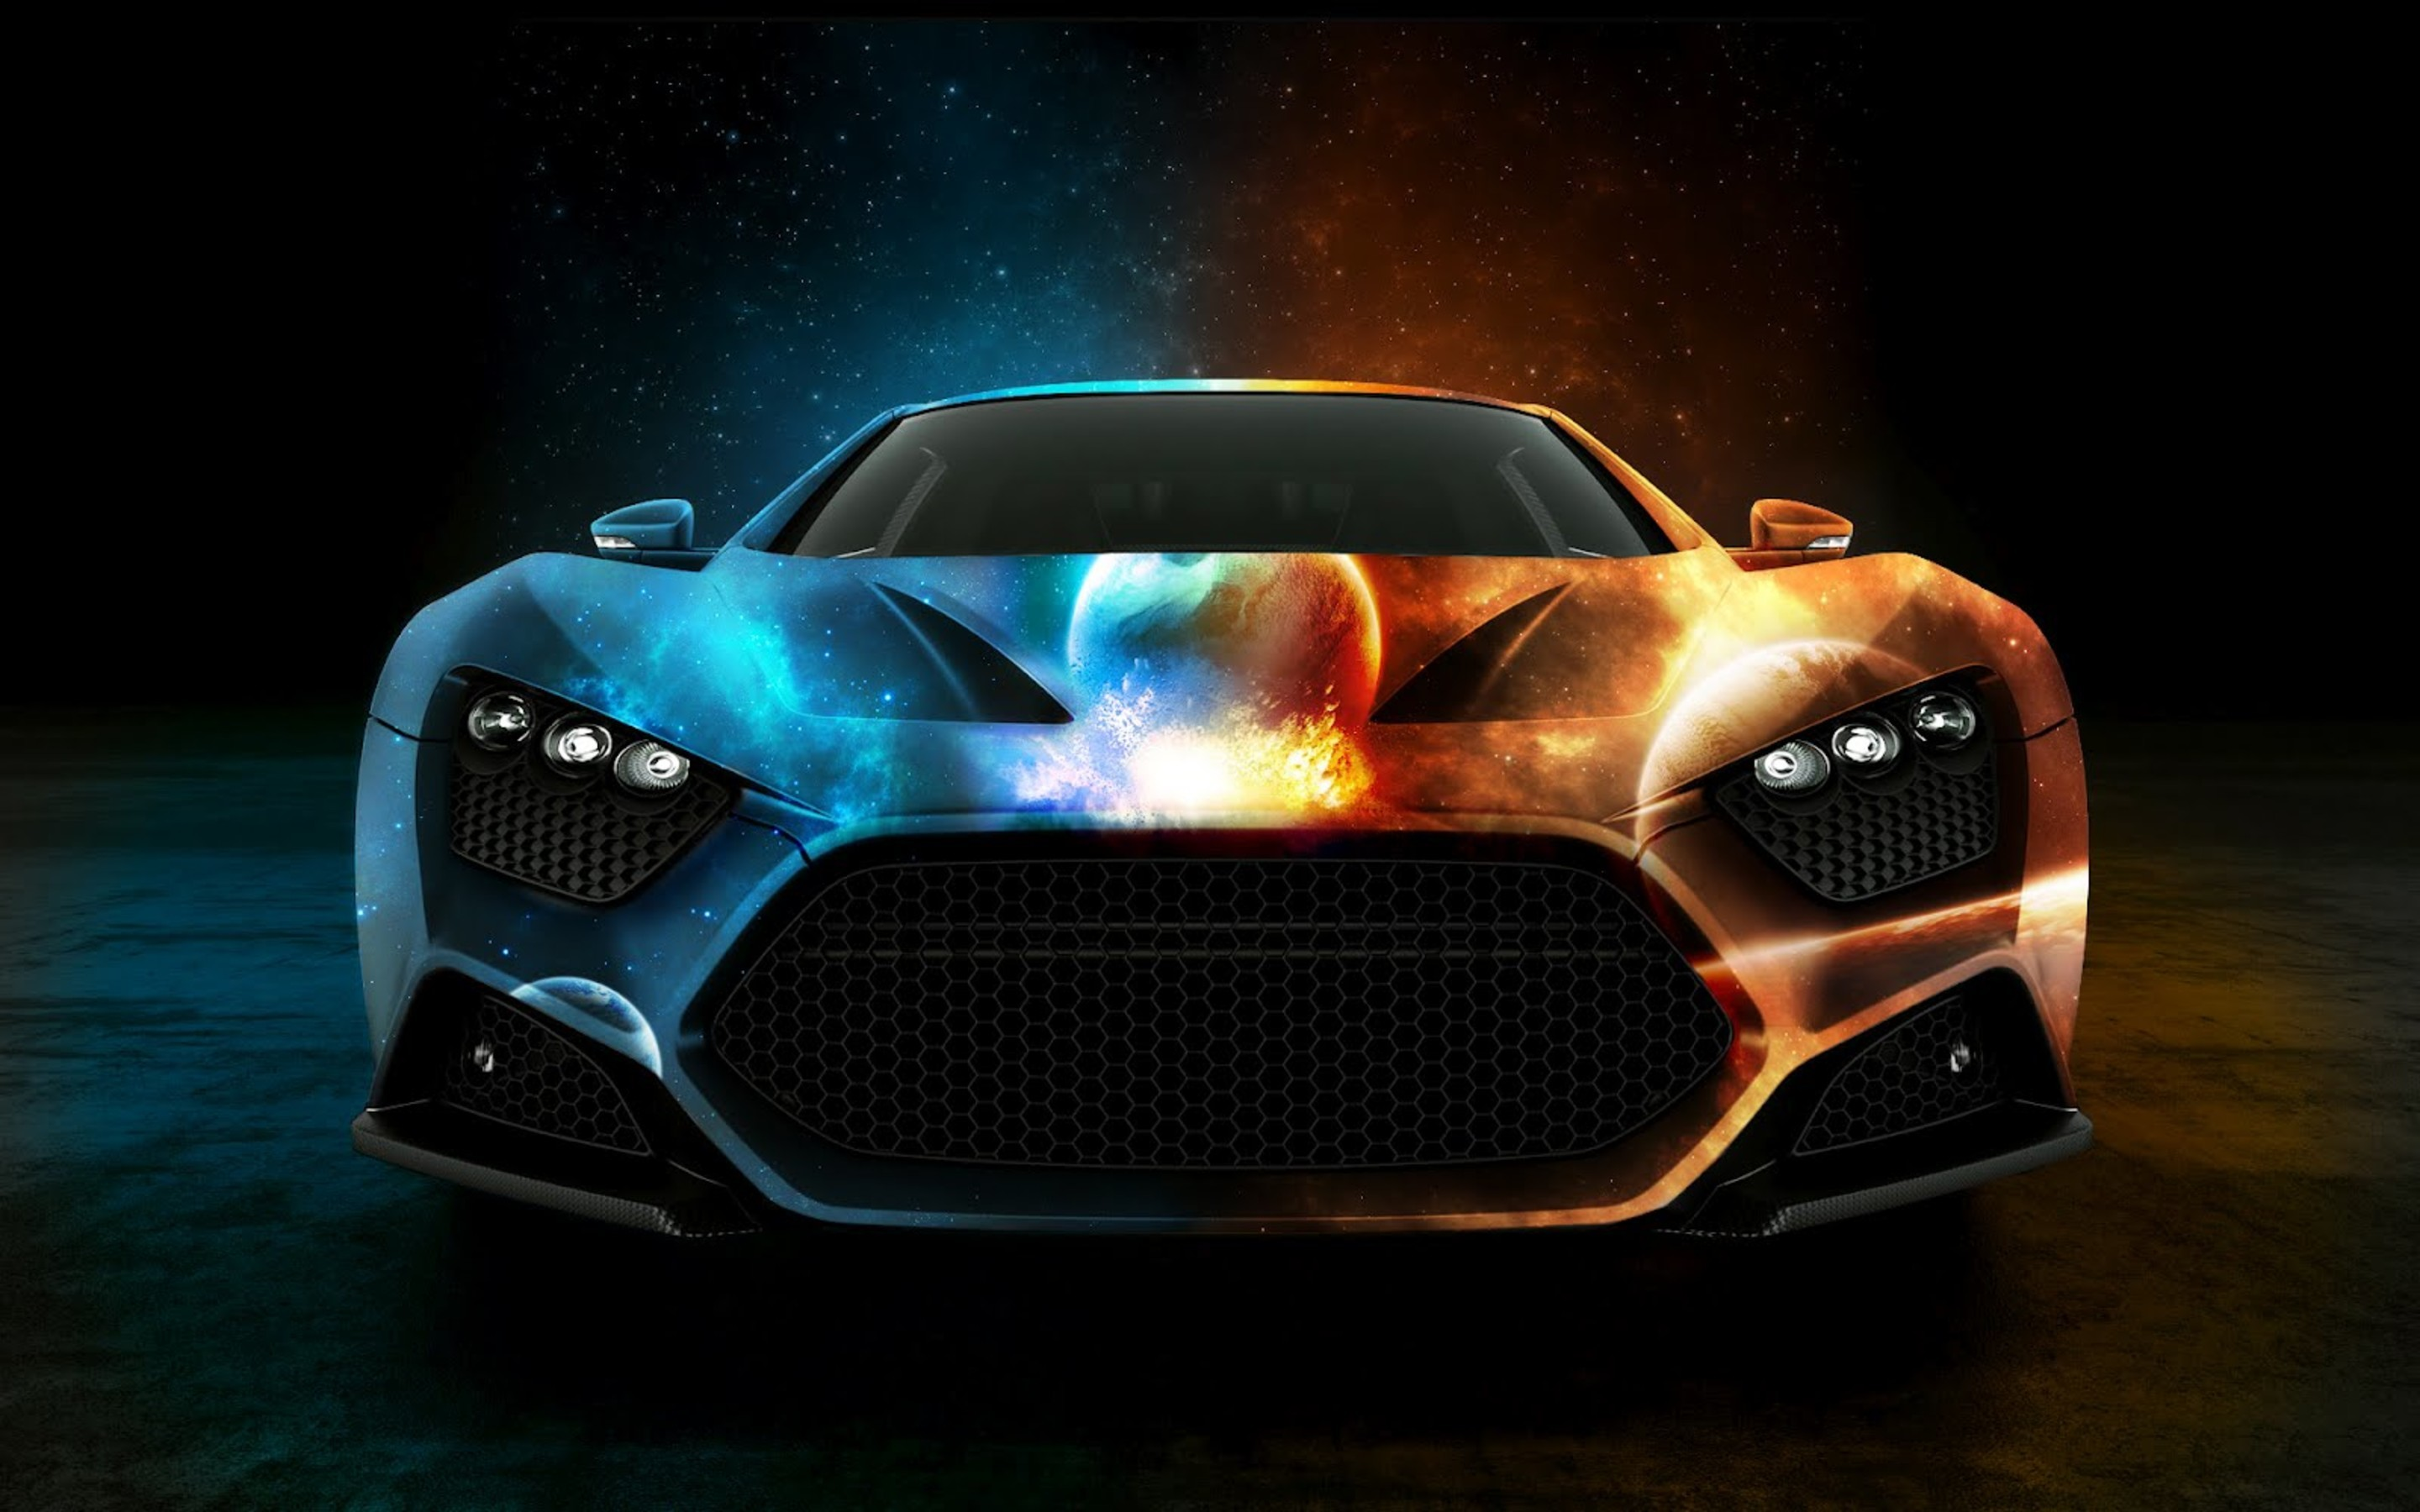 Collection of Car Hd Wallpaper on HDWallpapers Hd Wallpapers Of Cars  Wallpapers)